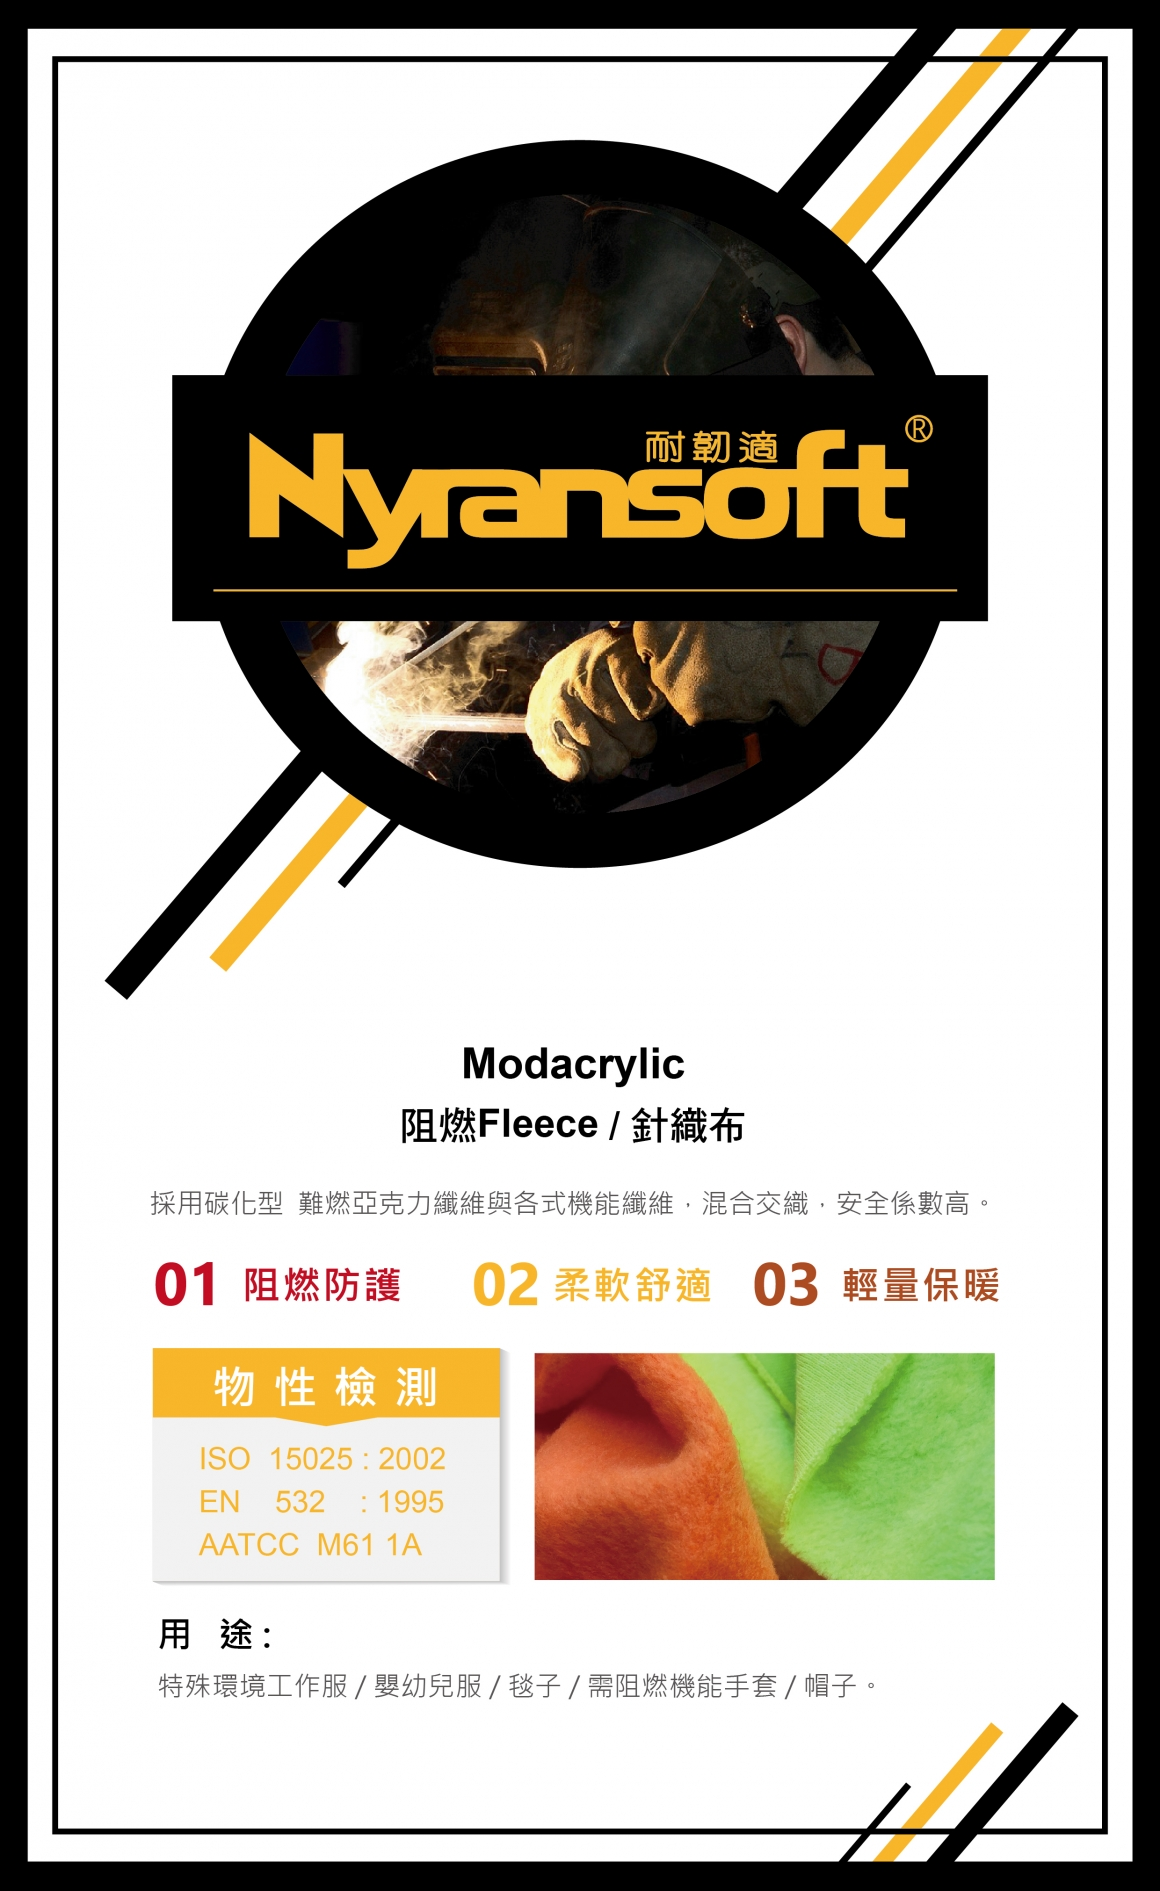 Nyransoft-Modacrylic阻燃fleece 針織布-01